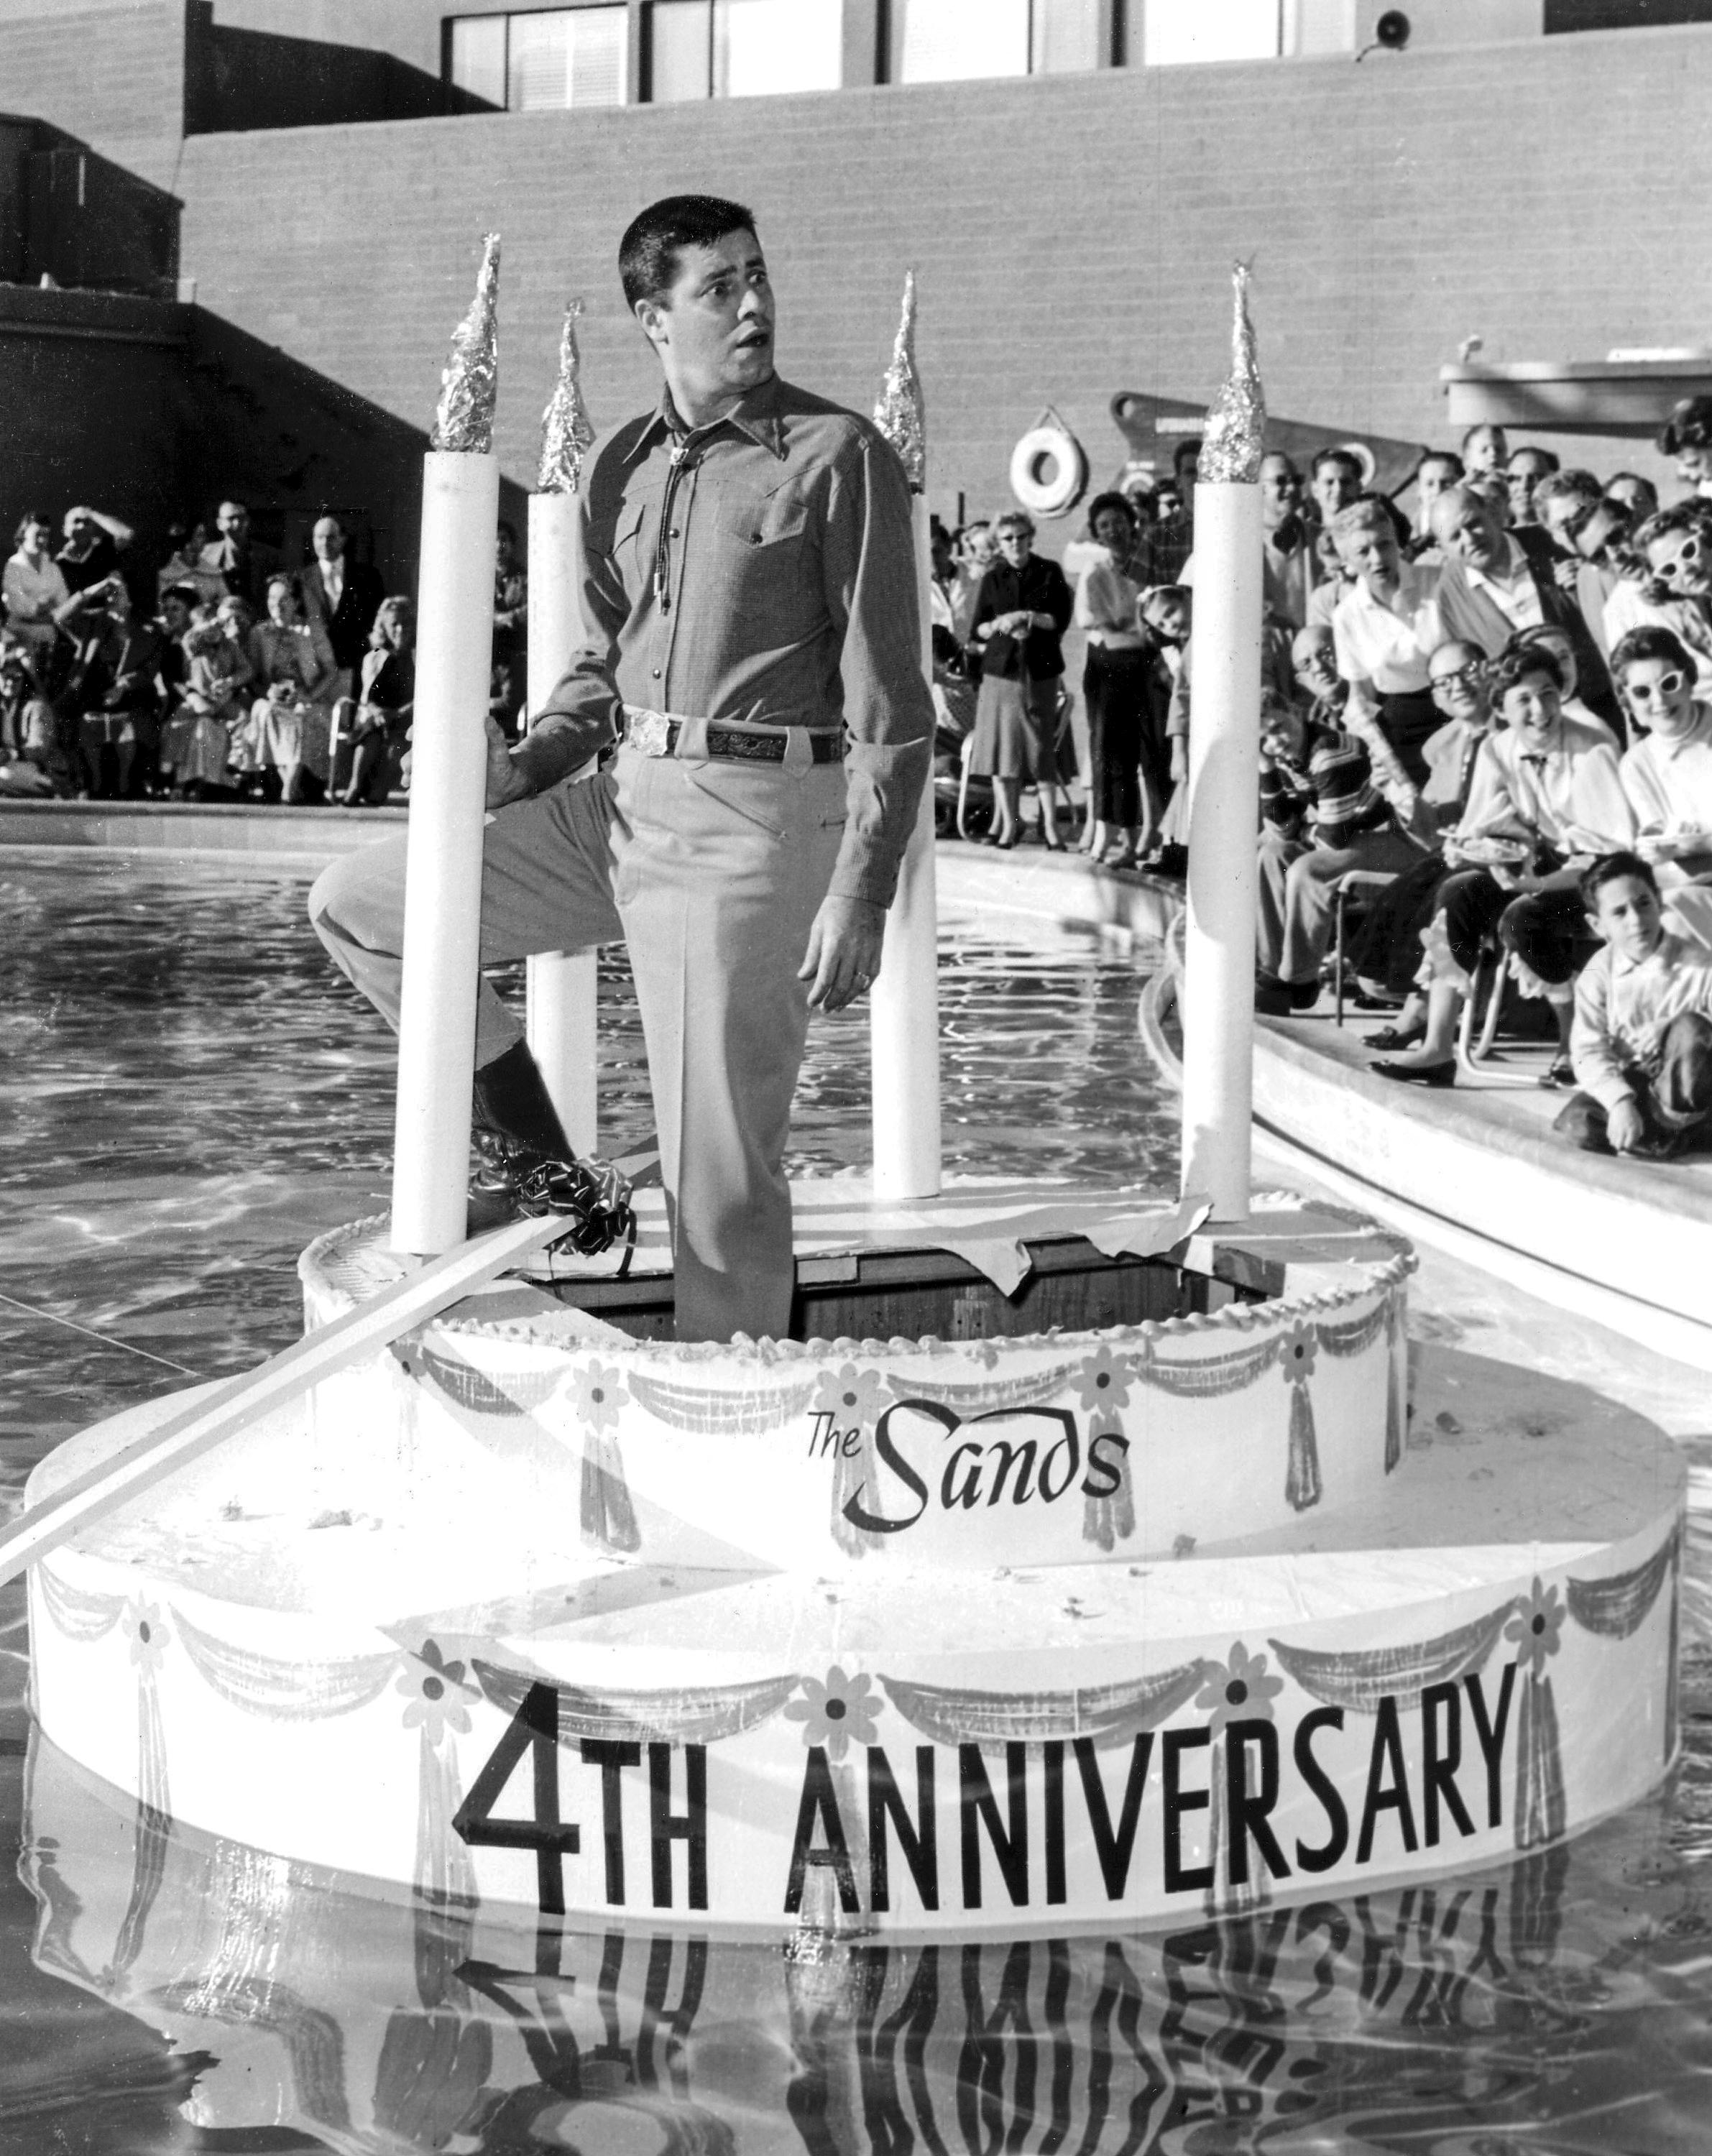 Jerry Lewis at the Sands 4th birthday party  12/15/56                 Sands Jerry Lewis 12/15/1956. CREDIT: Las Vegas News Bureau